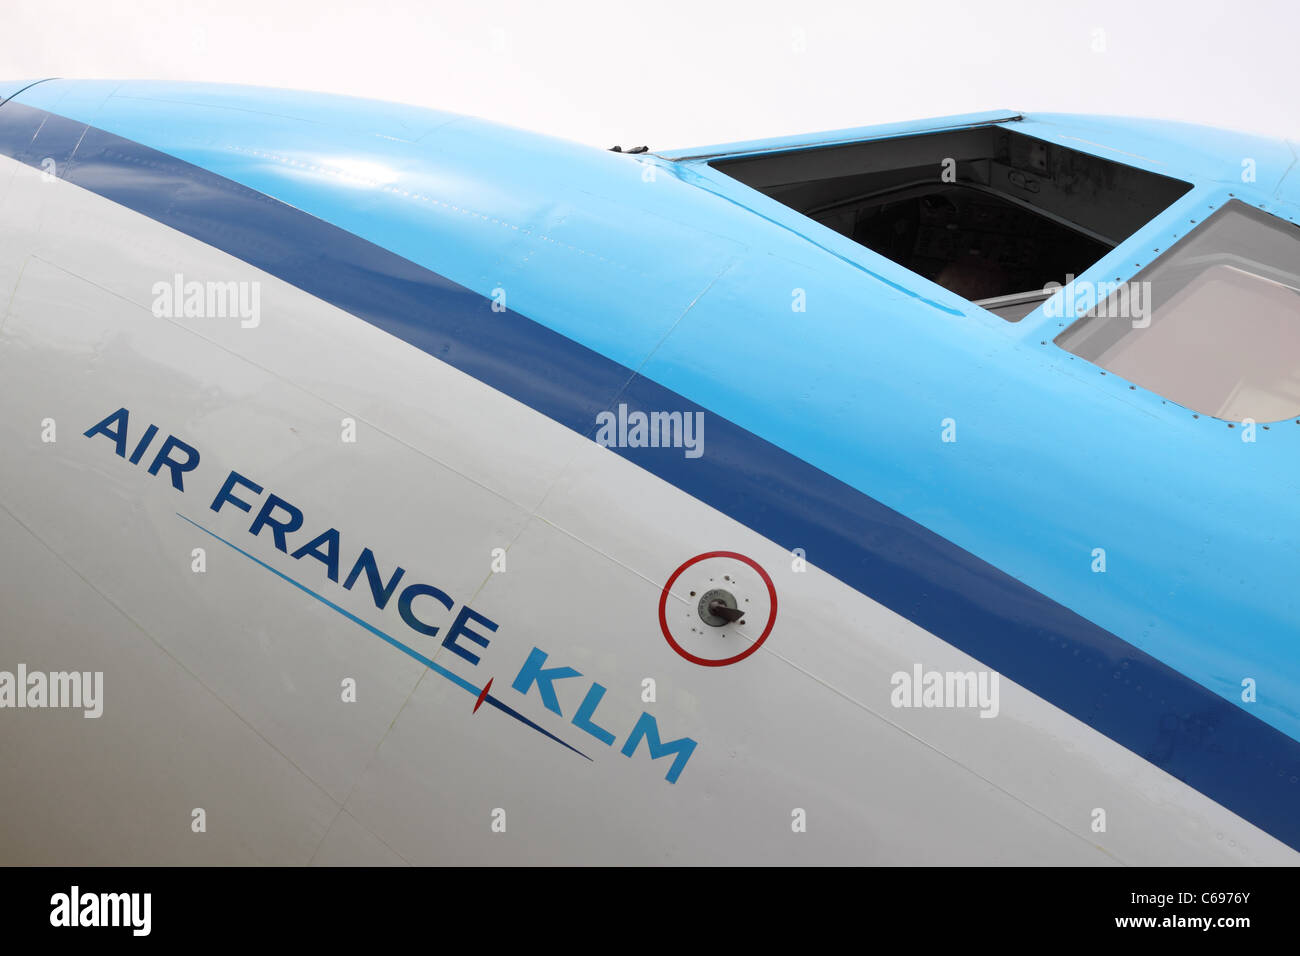 Air France KLM was formed in 2004 after the merging of airlines Air France and KLM - Stock Image